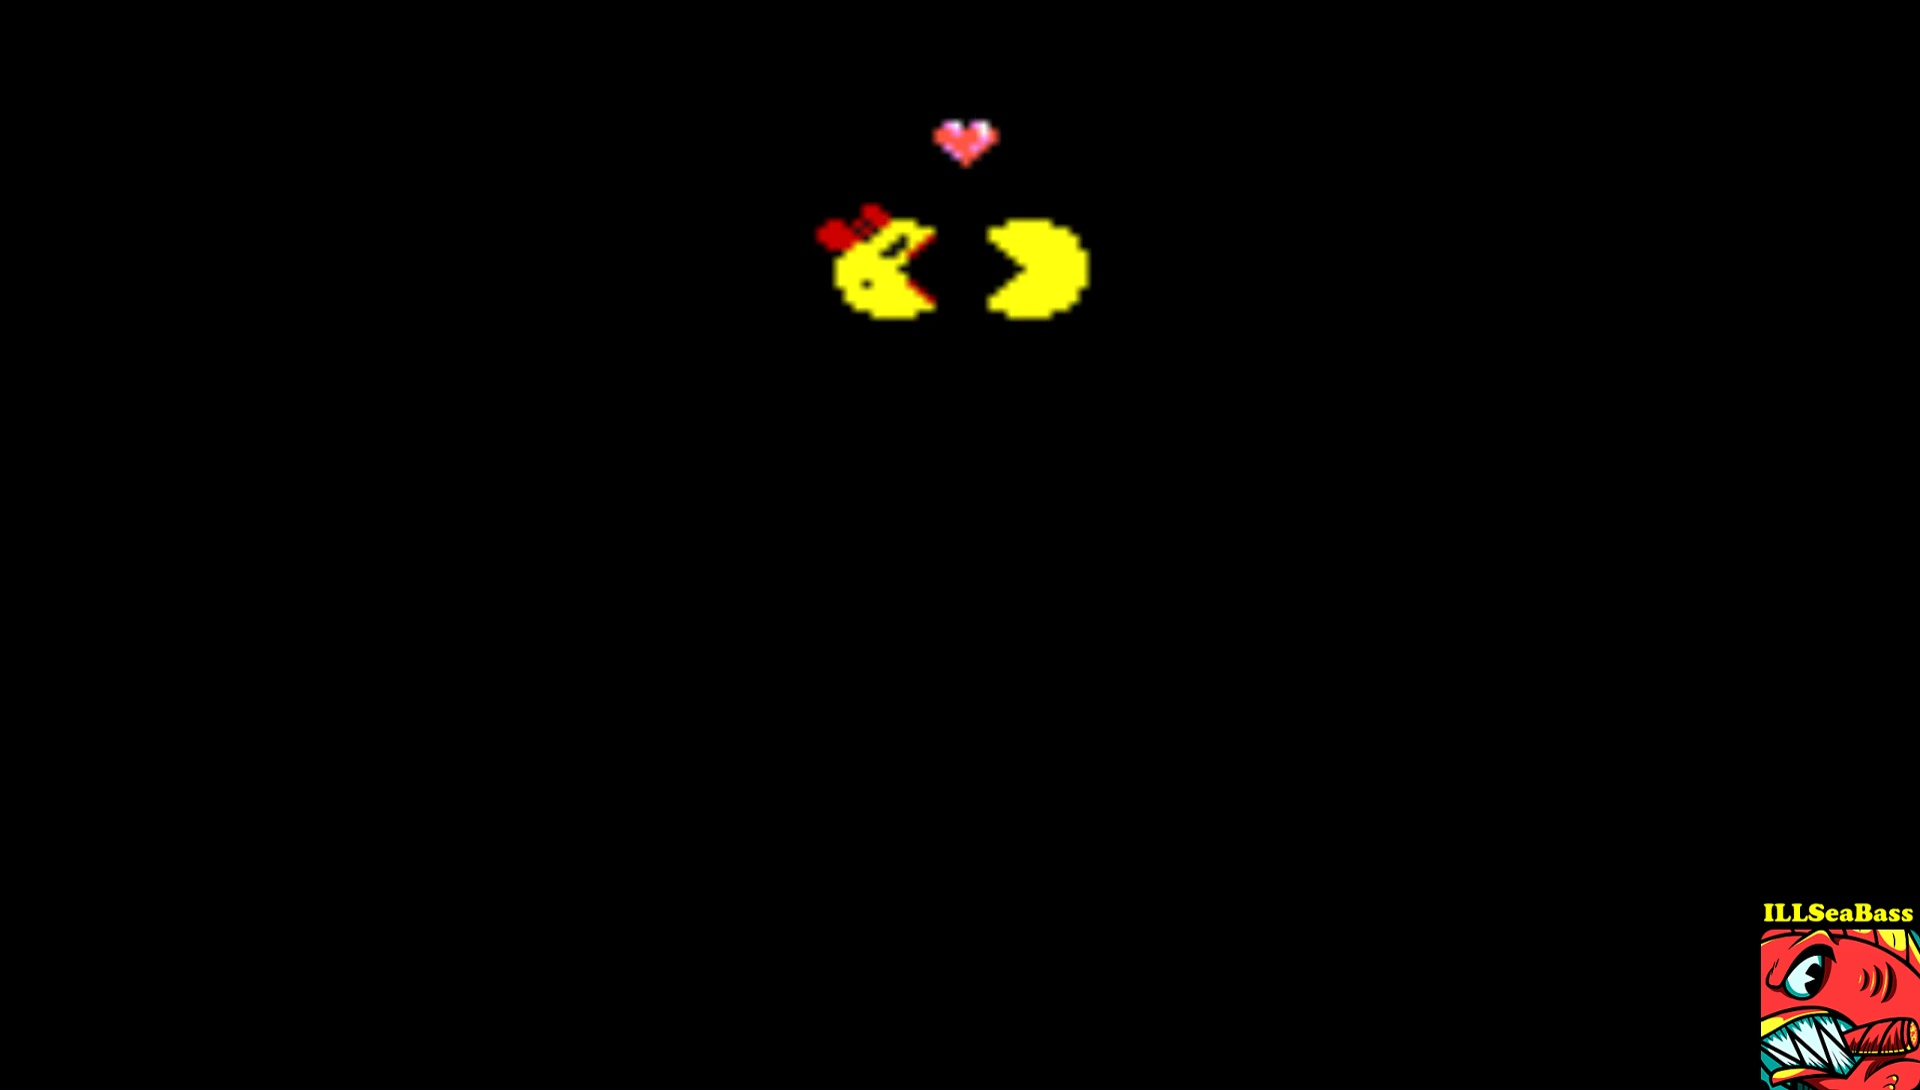 ILLSeaBass: Ms. Pac-Man (Sega Game Gear Emulated) 55,960 points on 2017-02-18 21:23:45